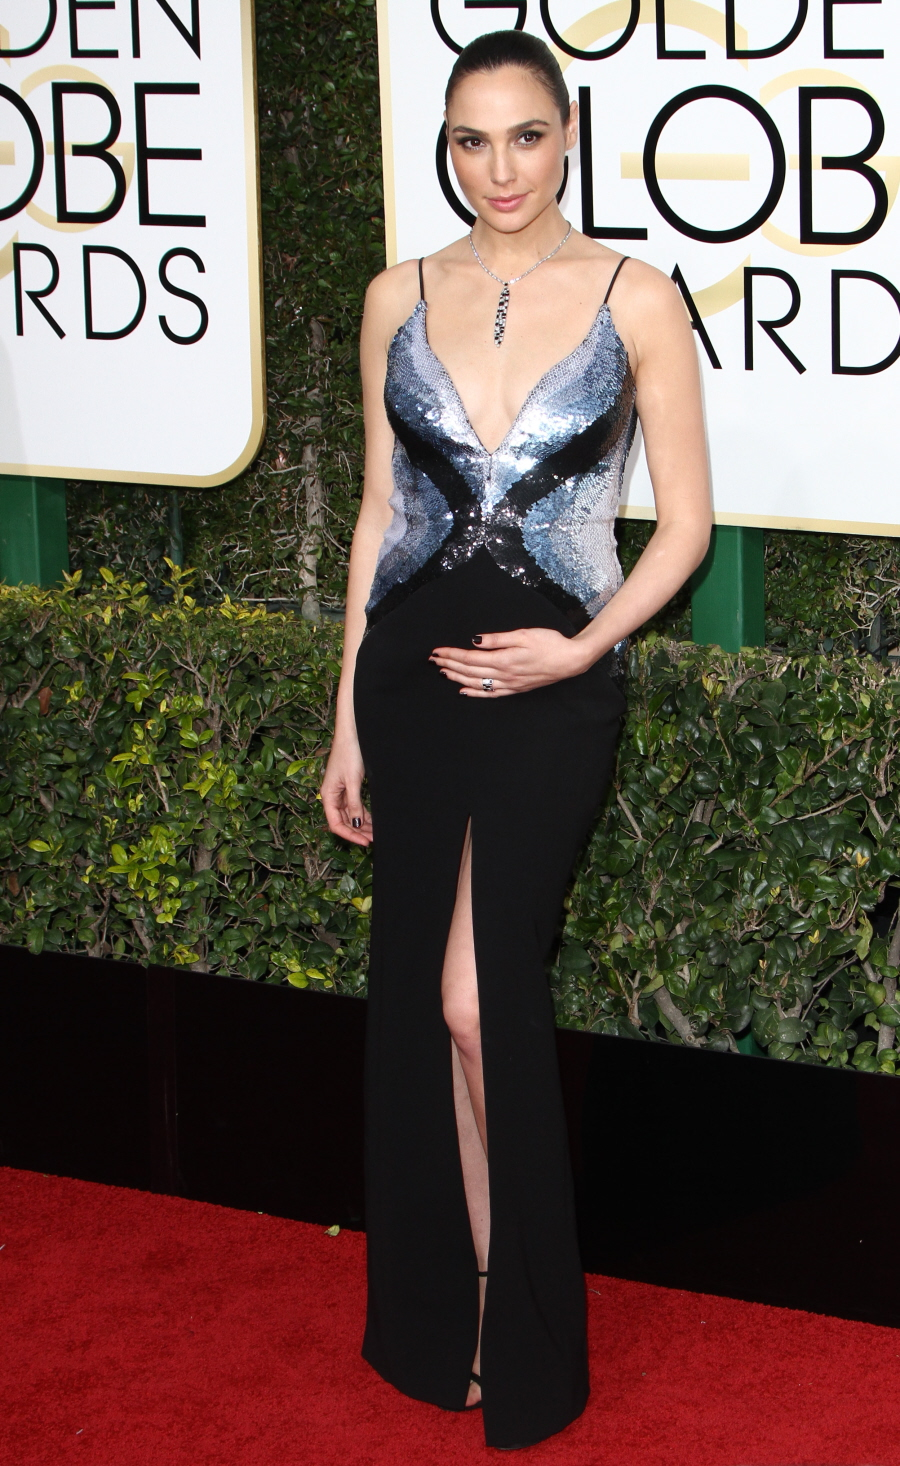 FFN_RIJ_GOLDEN_GLOBES_SET2_010817_52276578  bitchy   Nicole Kidman in McQueen: one of many worst seems of the Golden Globes? FFN RIJ GOLDEN GLOBES SET2 010817 52276578